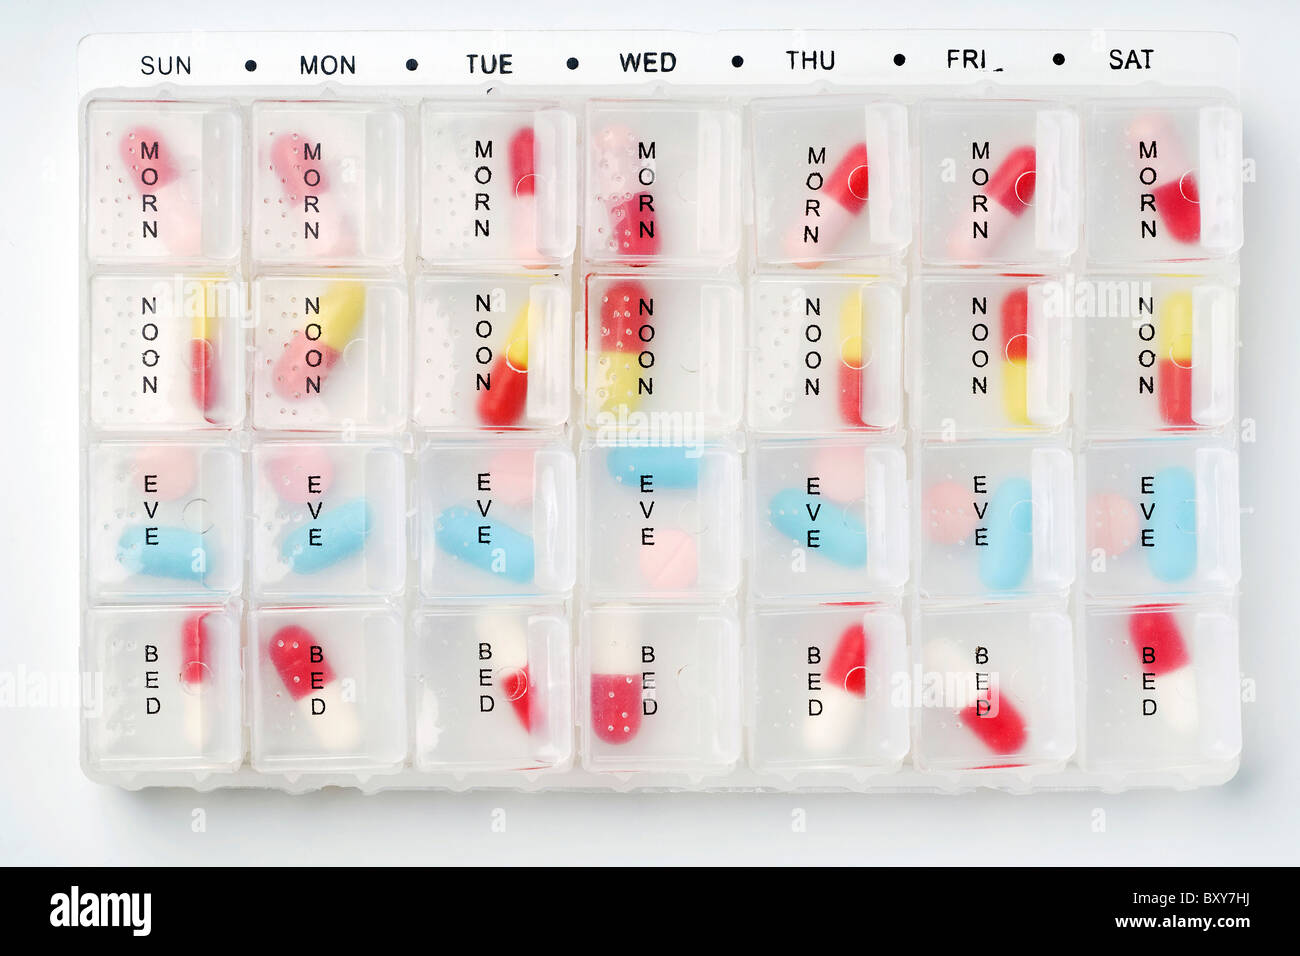 a week pill organizer on white - Stock Image